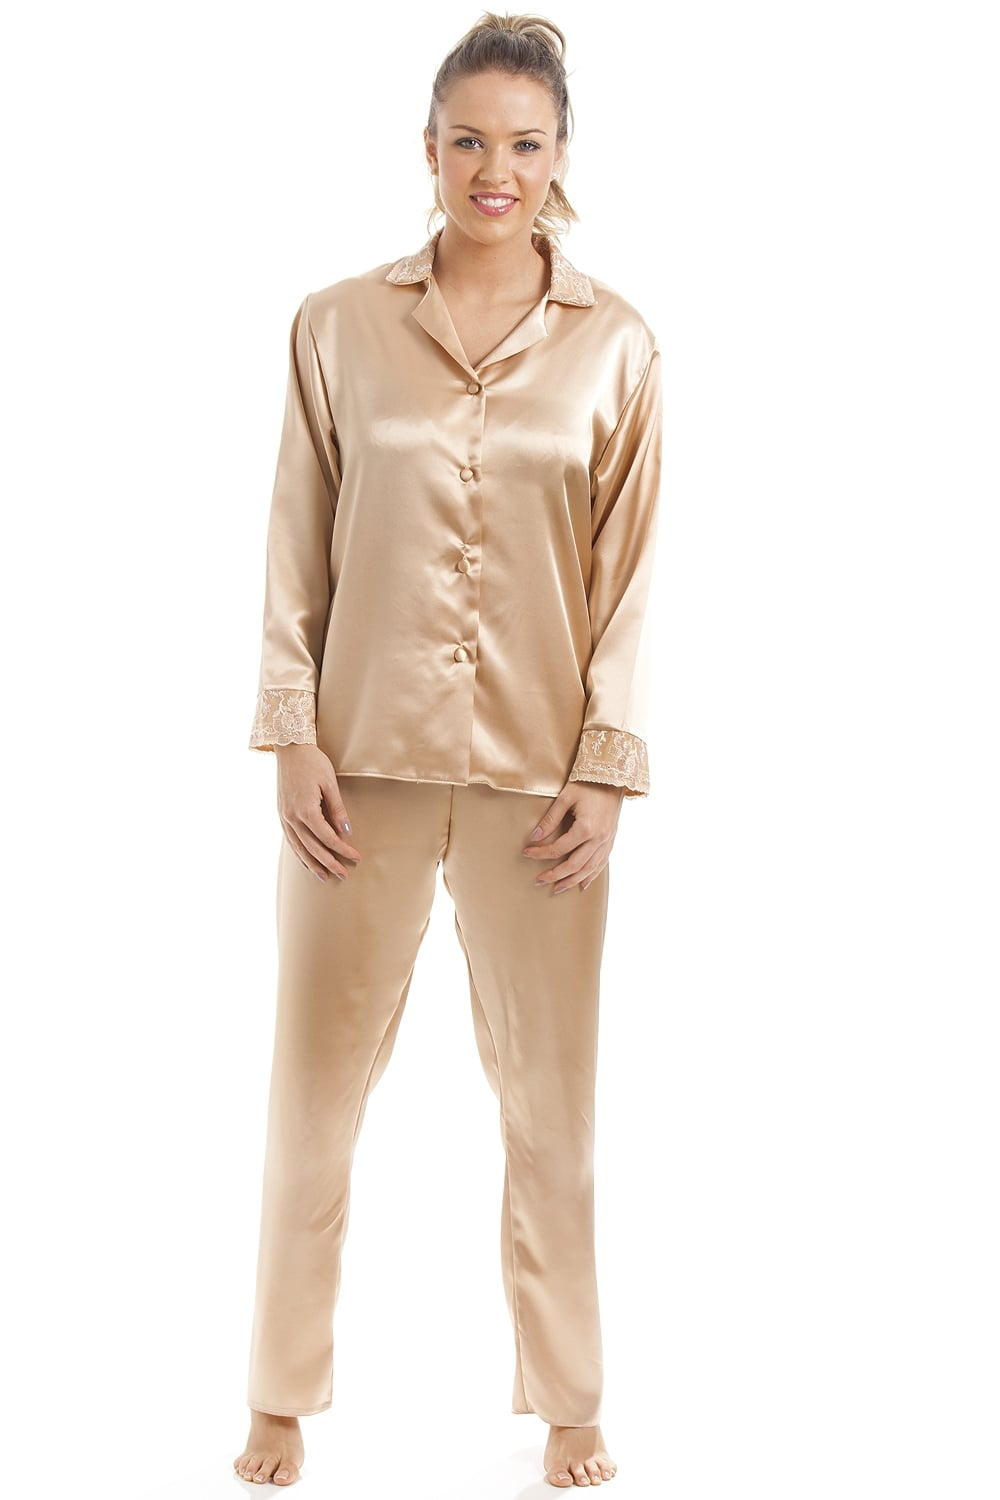 Features:Pajama pants,casual lounge pants,wide leg pants with NANJUN Women's Satin Pajamas Sleepwear Long Short Button-Down Pj Set. by NANJUN. $ - $ $ 9 $ 20 99 Prime. FREE Shipping on eligible orders. Some sizes/colors are Prime eligible. 4 out of 5 stars